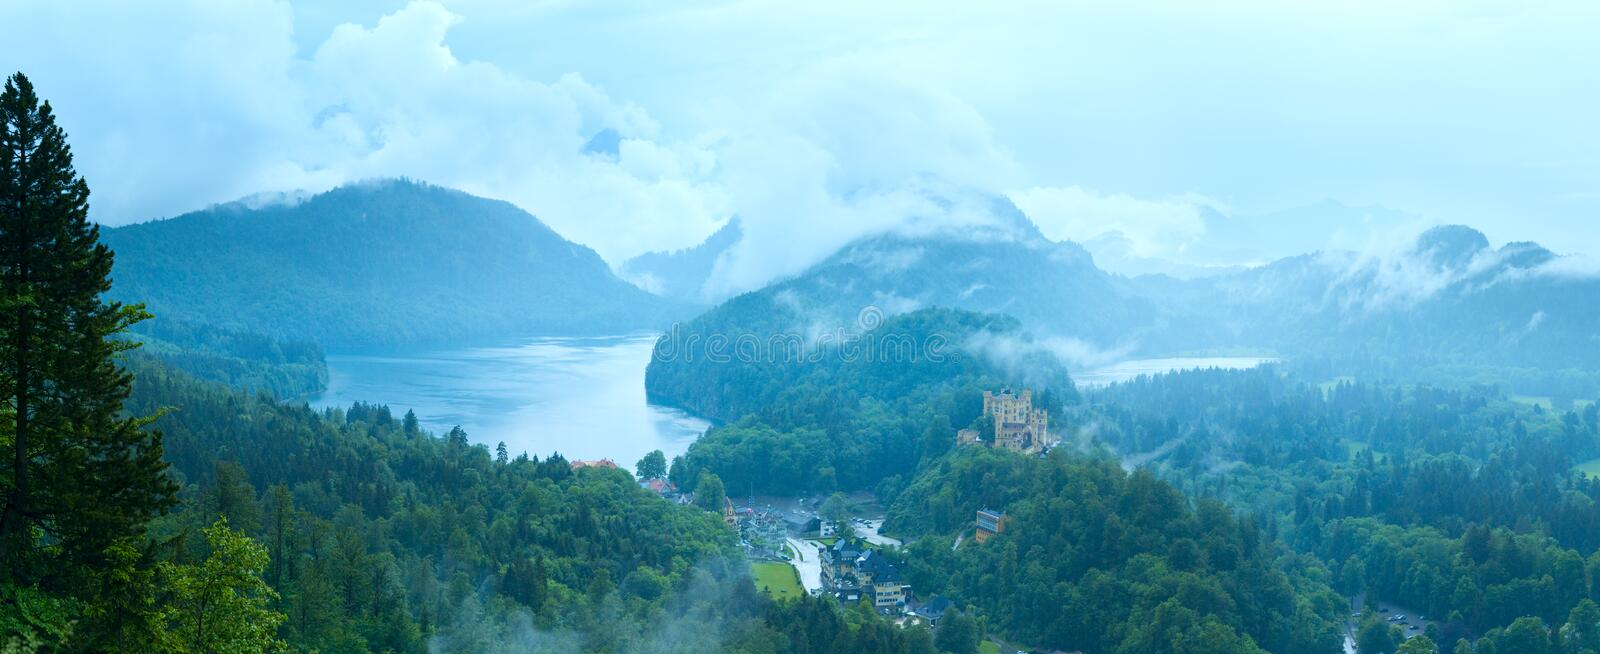 Cloudburst above Neuschwanstein Castle in Bavaria. Cloudburst above historic medieval Neuschwanstein Castle in Bavaria (Germany). View from Neuschwanstein Palace royalty free stock photography